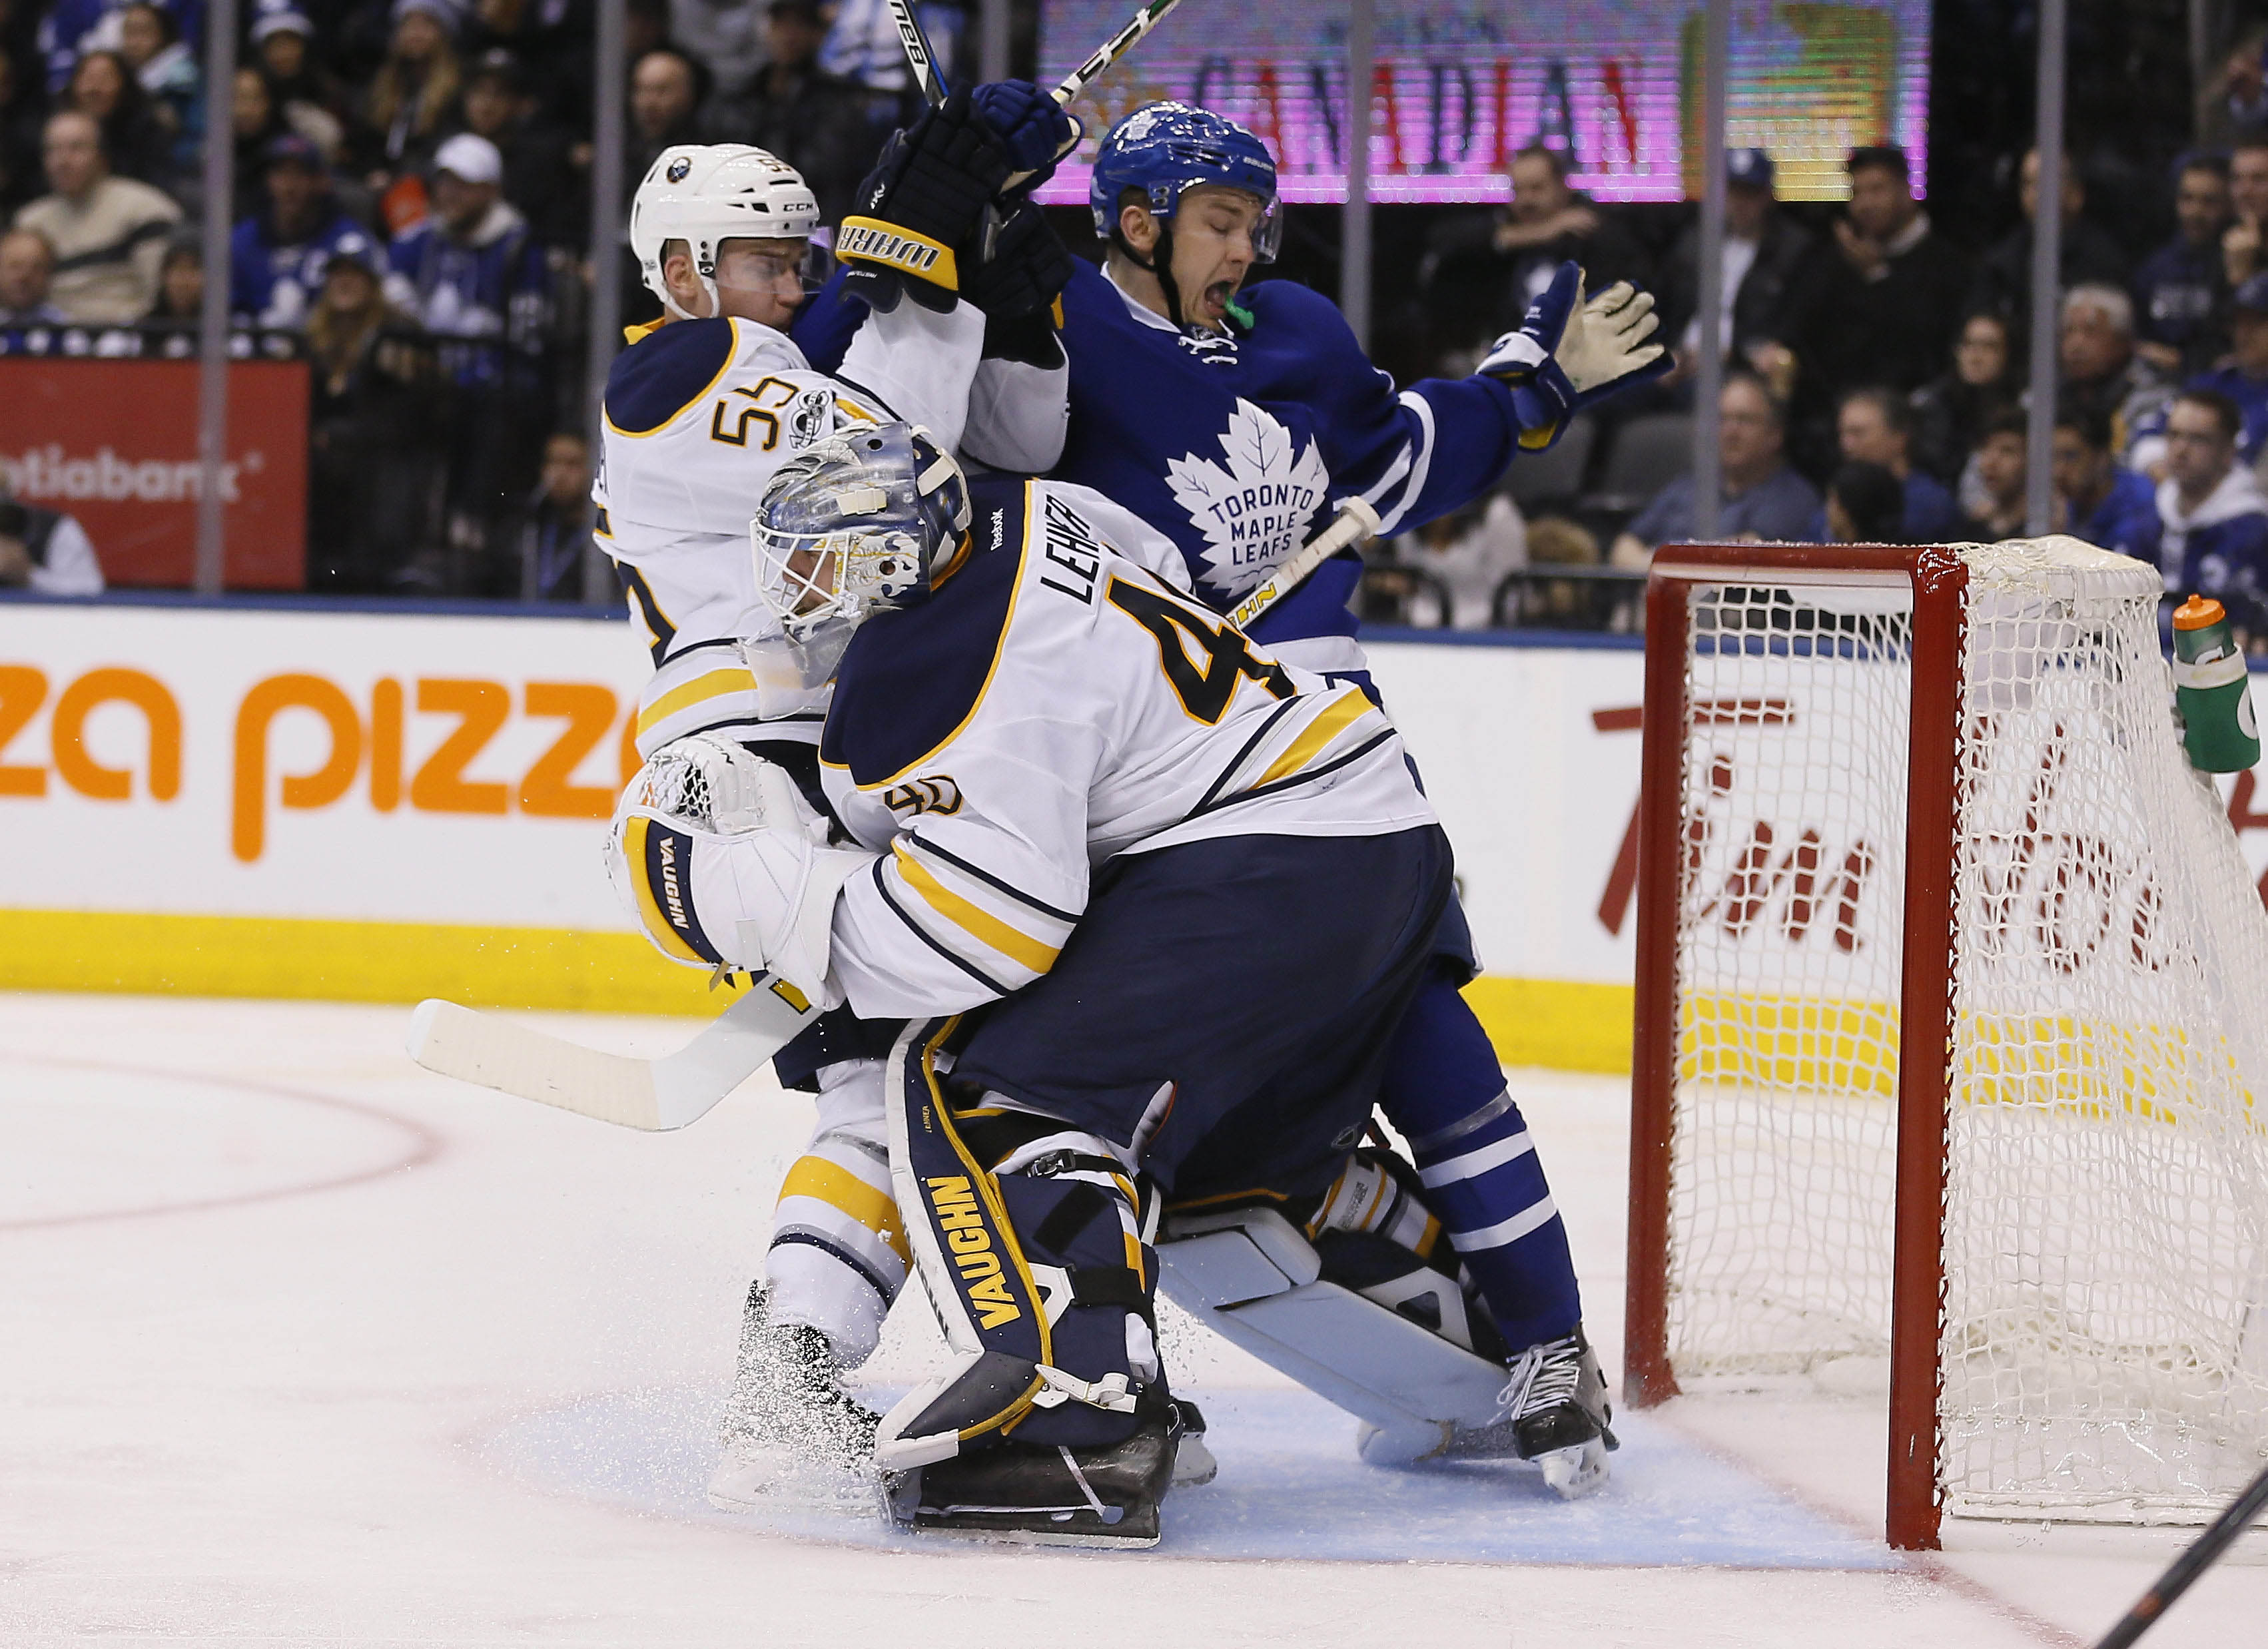 Sabres defenseman Rasmus Ristolainen and Toronto's James van Riemsdyk finished the game, but goalie Robin Lehner did not. (USA Today Sports)